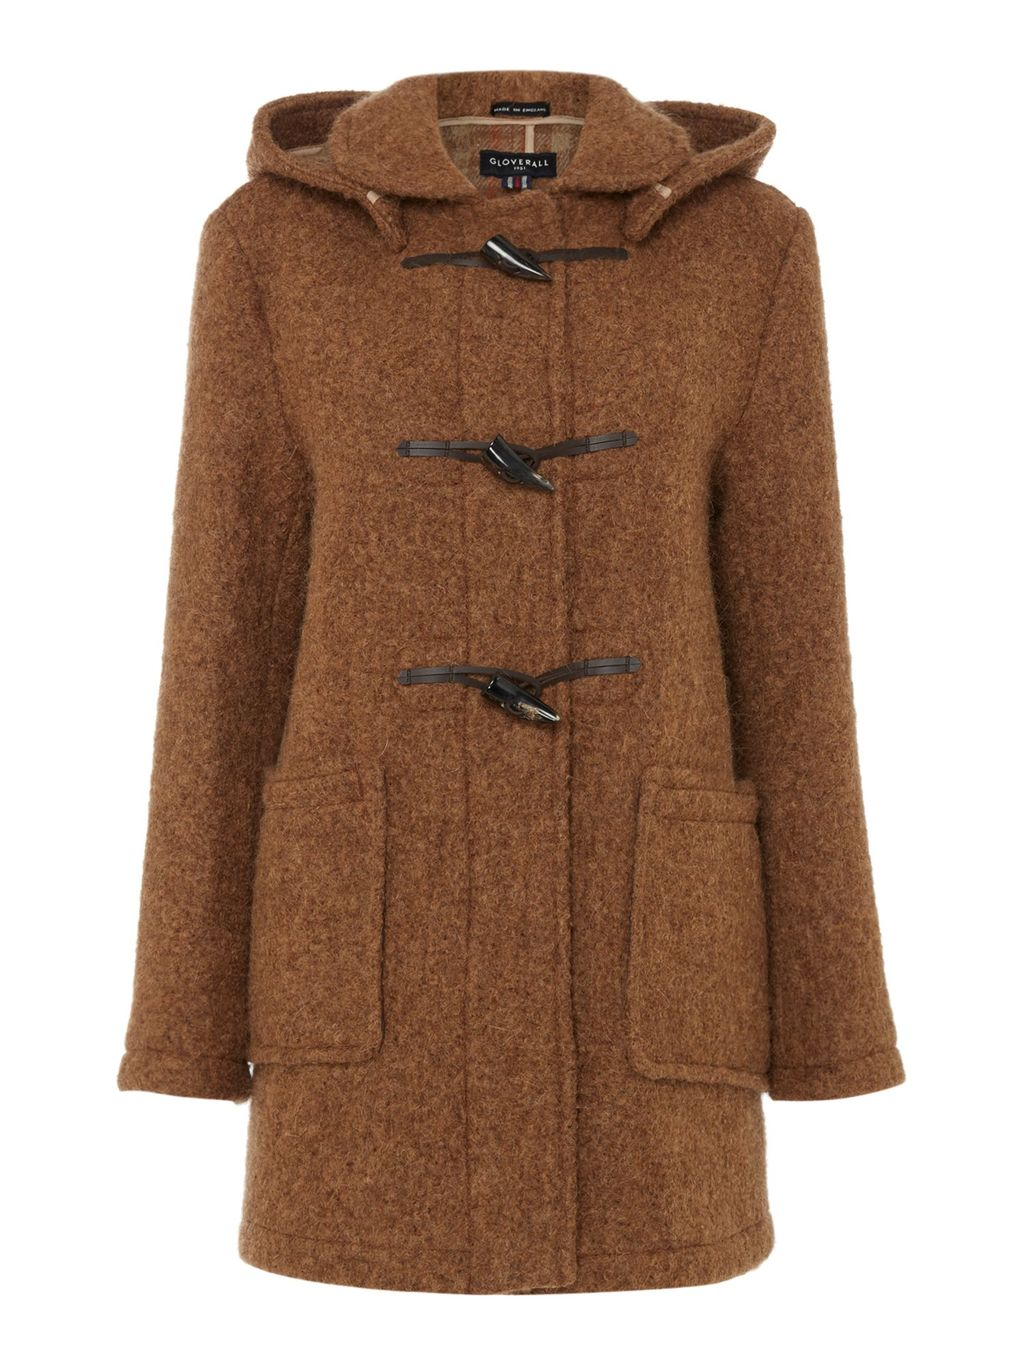 Mid Duffle Coat, Brown - pattern: plain; back detail: hood; collar: high neck; style: duffle coat; length: mid thigh; predominant colour: tan; occasions: casual; fit: straight cut (boxy); fibres: wool - mix; hip detail: added detail/embellishment at hip; sleeve length: long sleeve; sleeve style: standard; collar break: high; pattern type: fabric; texture group: woven bulky/heavy; season: s/s 2016